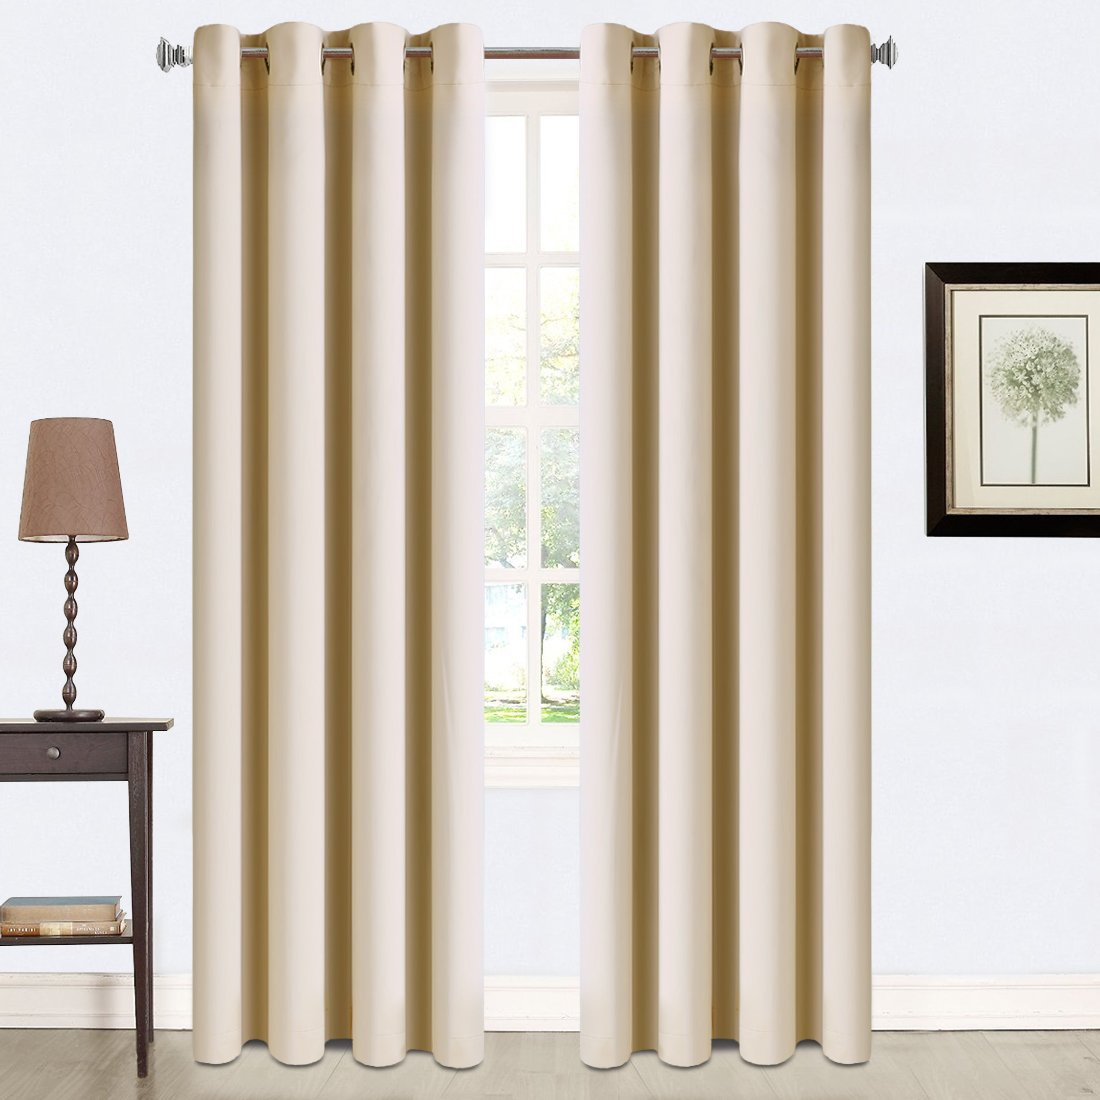 Beige Balichun 2 Panels Blackout Curtains Thermal Insulated Grommets Darkening Drapes